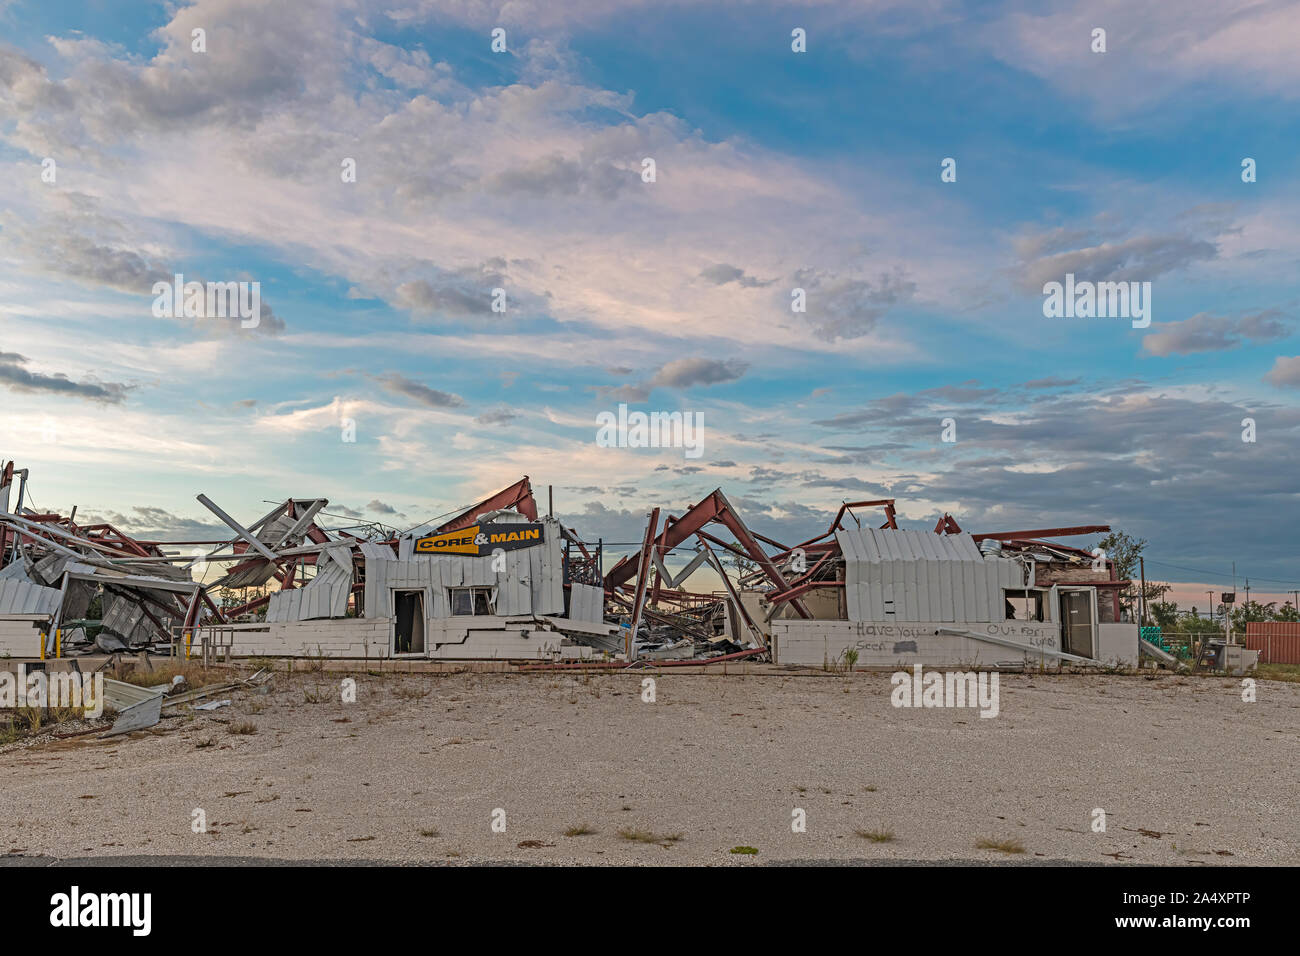 Panama City, Florida USA 10/16/2019. Businesses on industrial drive were destroyed by hurricane Michael. One year later this is what it looks like. Stock Photo